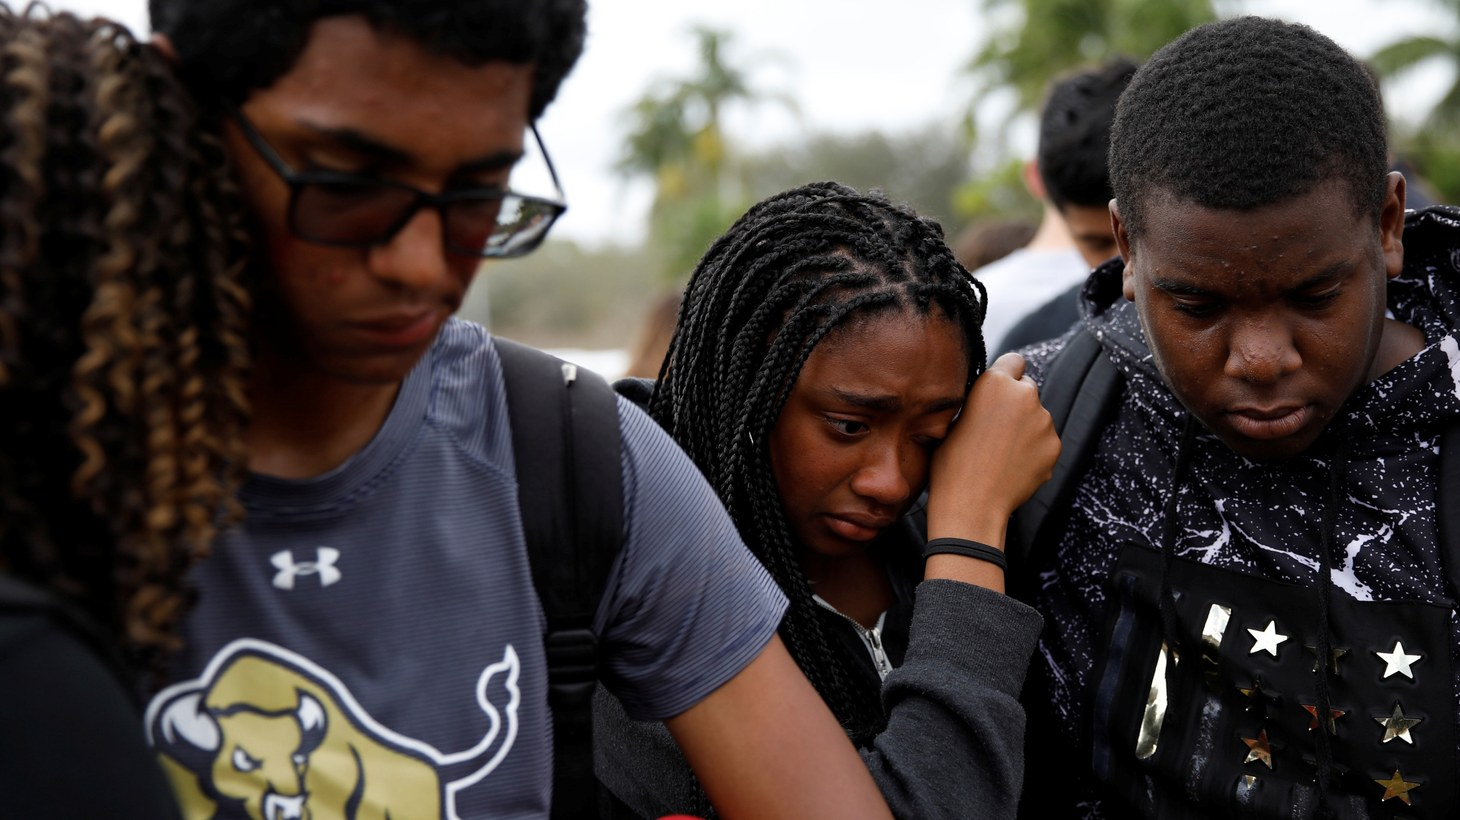 Candace Taylor (C), a student from West Boca Raton Community High School grieves with schoolmates, at Marjory Stoneman Douglas High School, during a protest to show support, following a mass shooting in Parkland, Florida, U.S., February 20th, 2018.